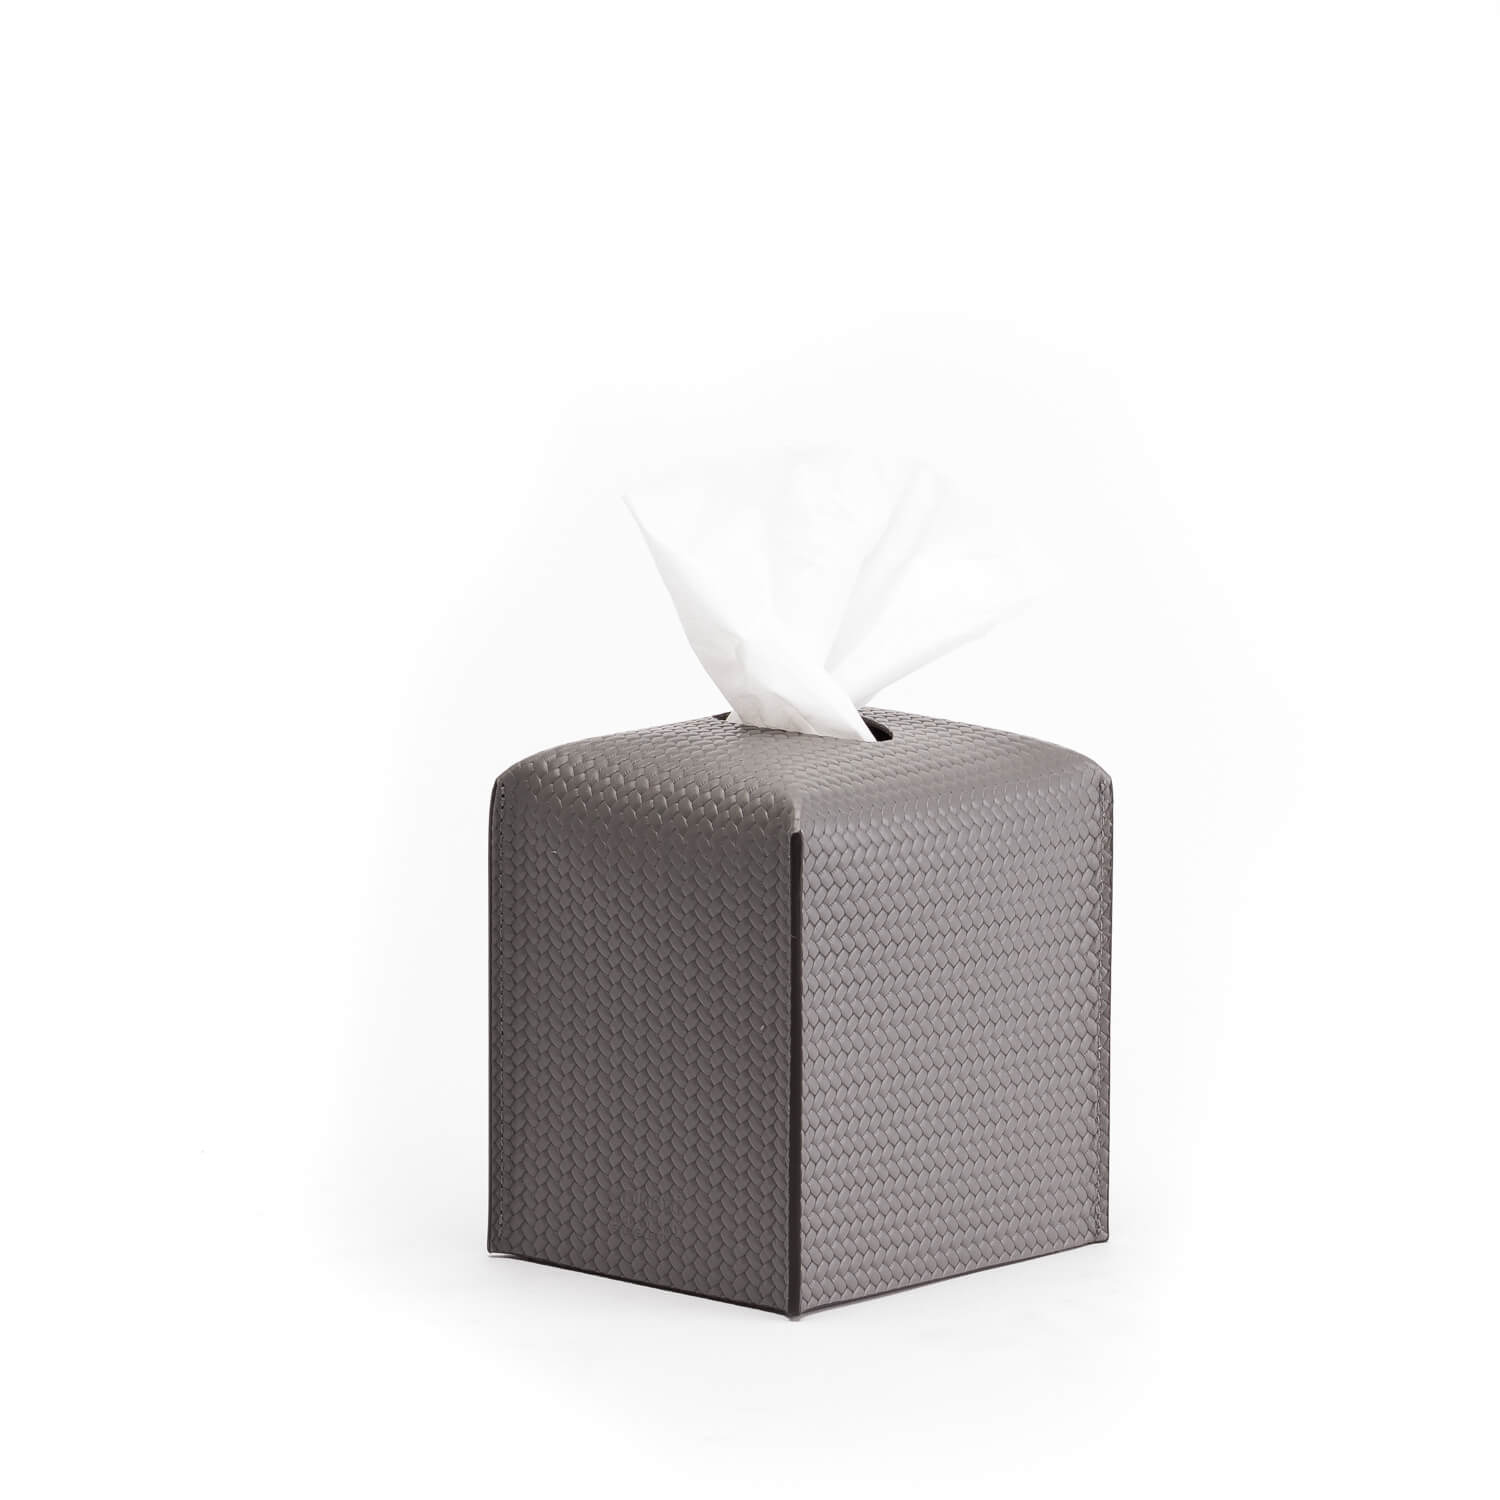 Grey Curved Leather Tissue Box | Katharine Pooley